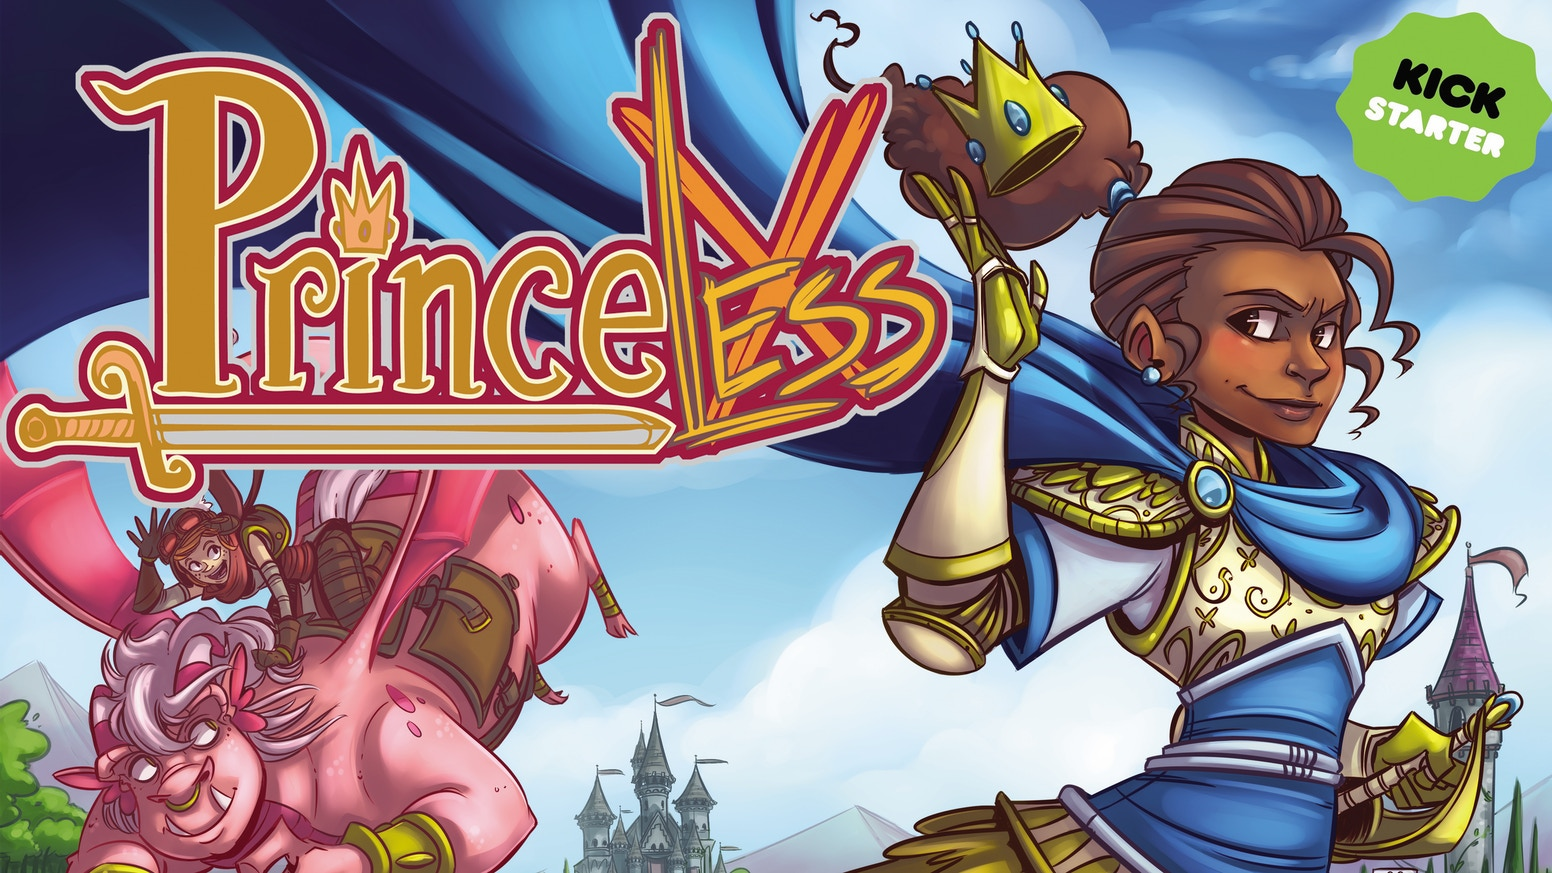 A deluxe hardcover for Princeless Book 3: the story that launched the critically acclaimed spinoff, Raven: Pirate Princess.